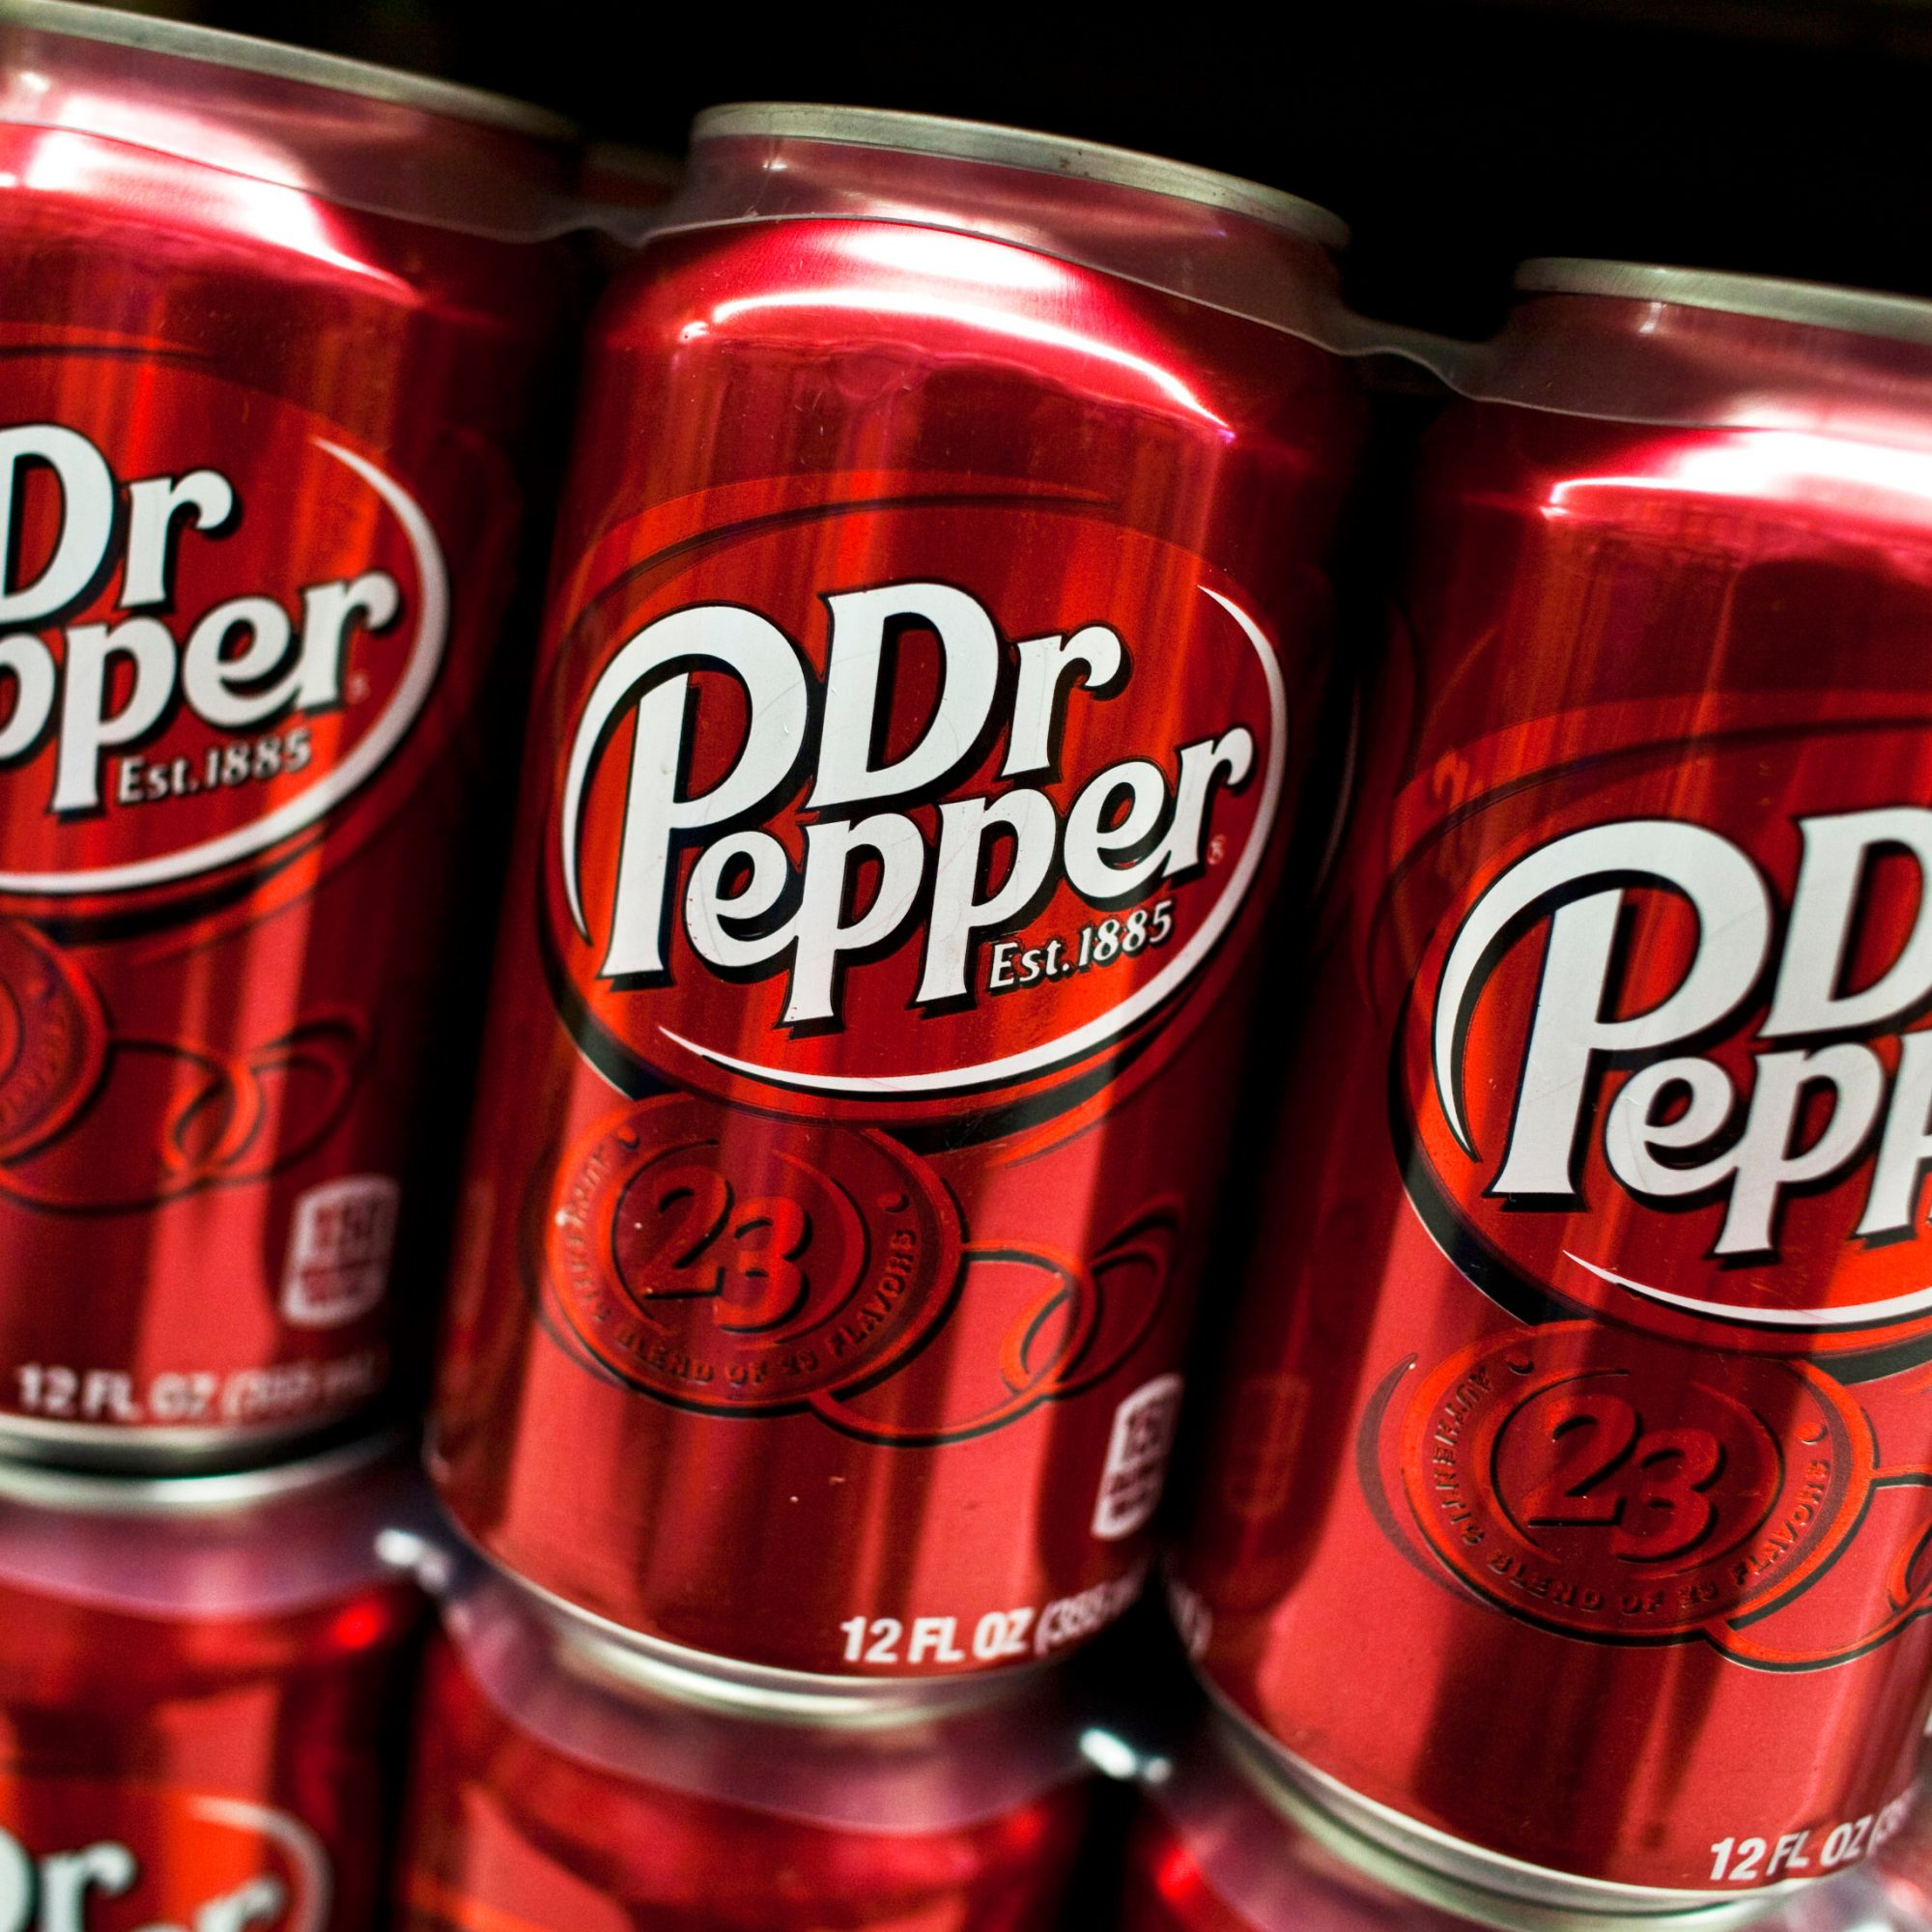 Who Was the Real Dr. Pepper?